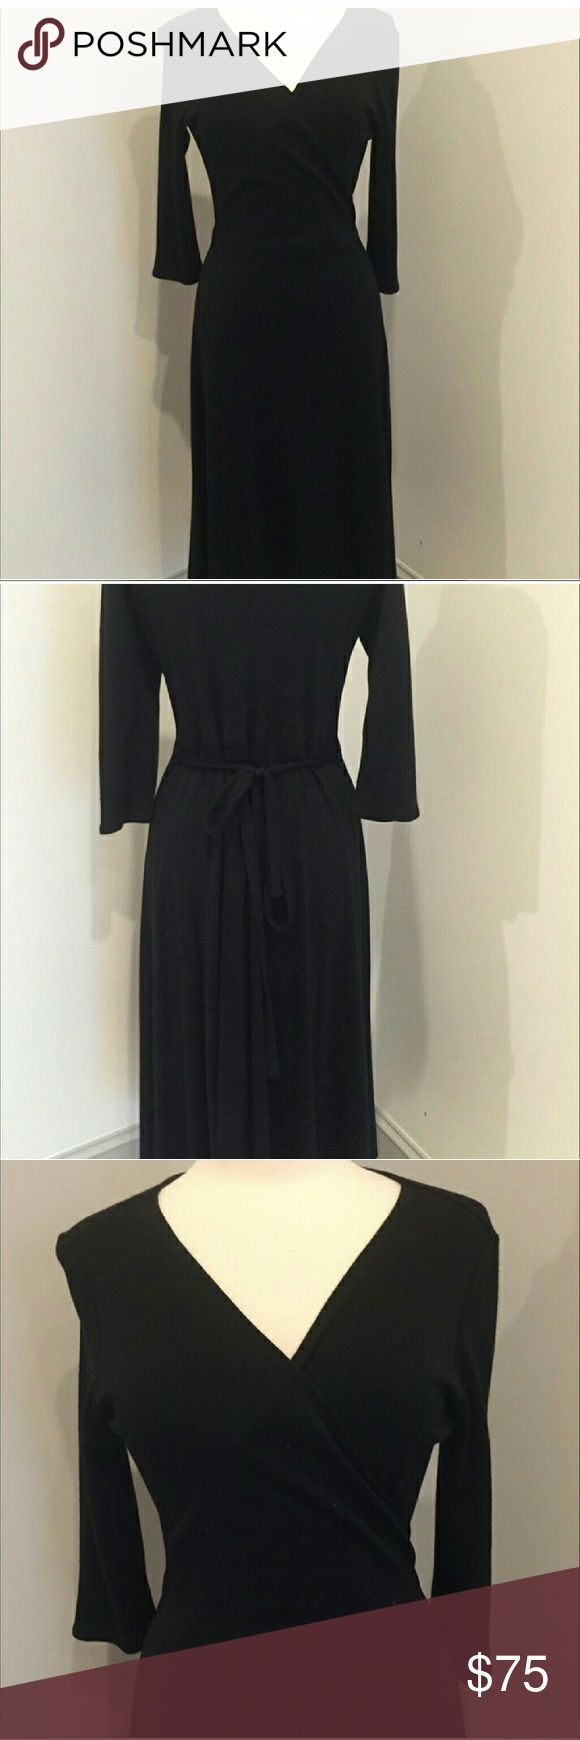 Eileen Fisher Wrap Dress Black wrap dress. Never worn by me. Too big. Beautiful light weight wool black wrap dress. Eileen Fisher Dresses Midi